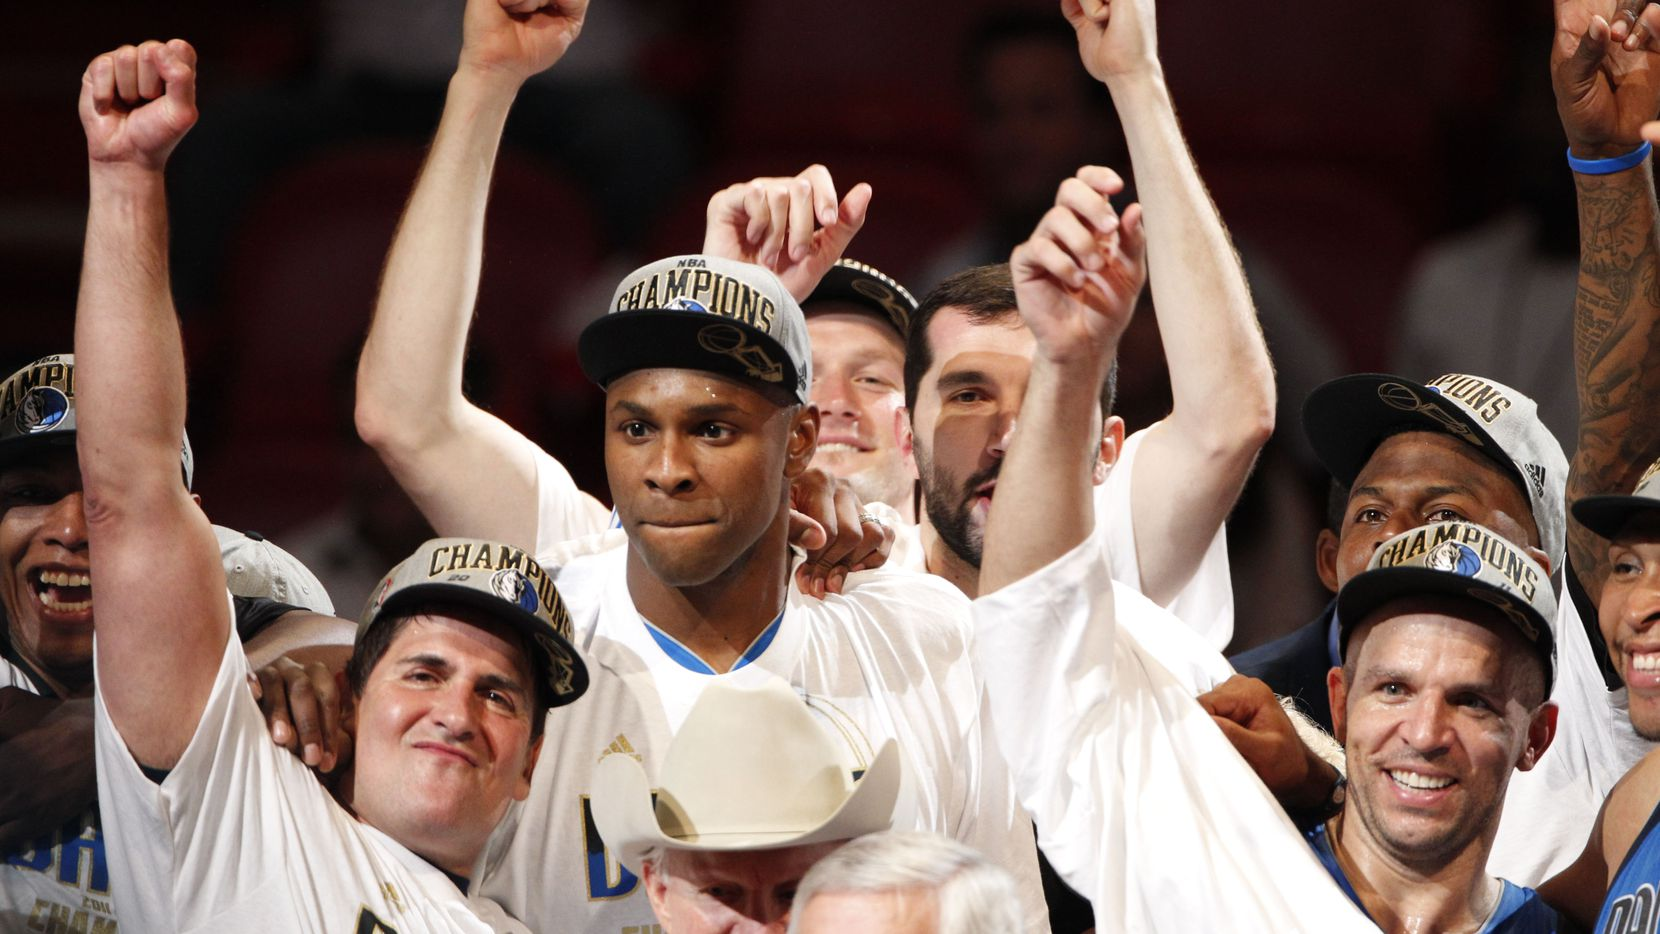 The Dallas Mavericks - including team owner Mark Cuban (bottom left), Brendan Haywood (above Cuban), Dallas Mavericks point guard Jason Kidd (2) (bottom right) and others celebrate after the Mavs won the NBA Championship by winning game six of the NBA Finals between the Miami Heat and the Dallas Mavericks at the American Airlines Arena in Miami, Florida, June 12, 2011. The Mavericks won 105-95 to take the title.